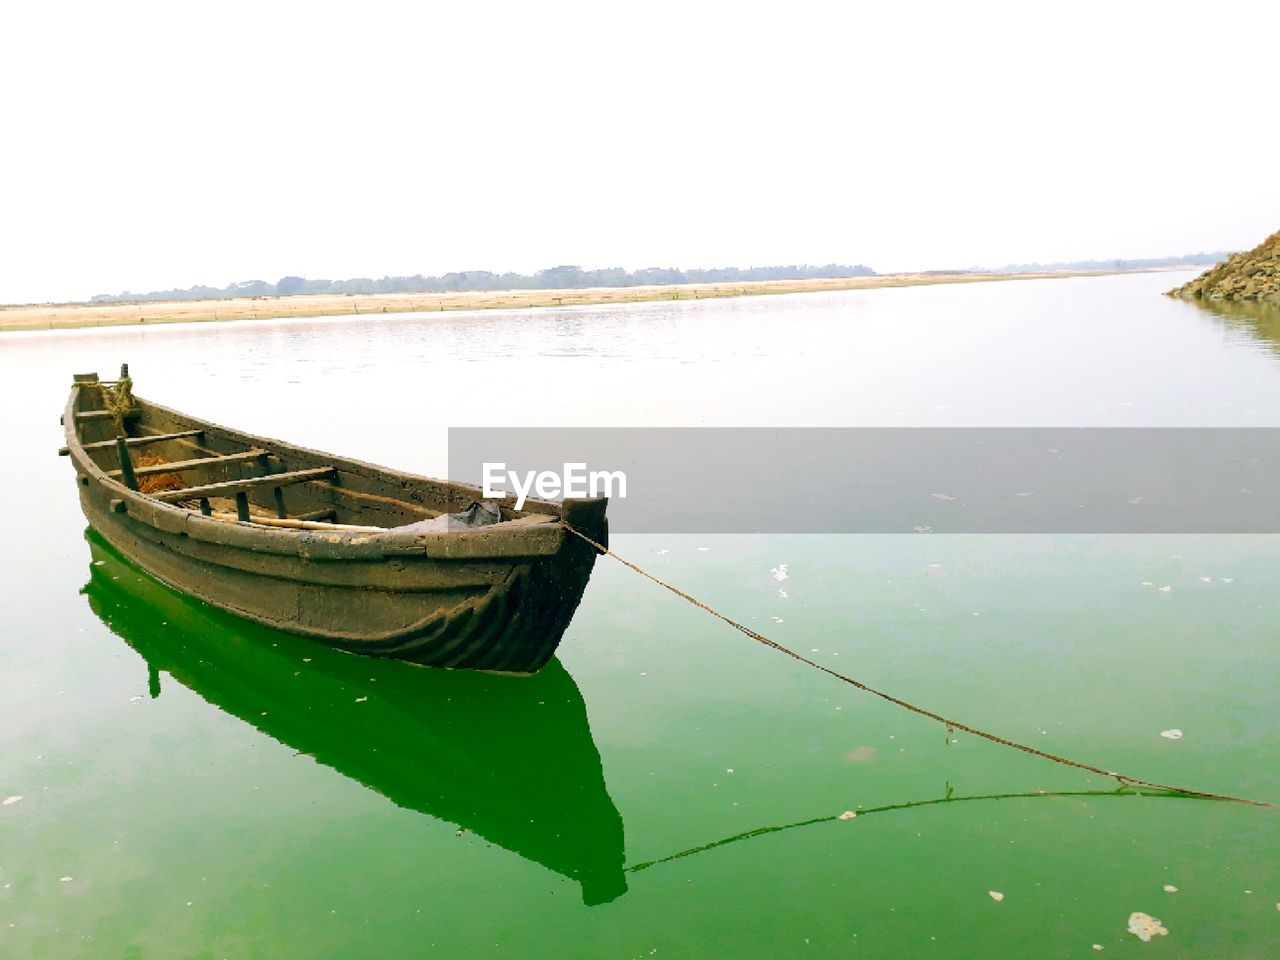 water, nautical vessel, transportation, mode of transportation, reflection, tranquility, moored, sky, nature, no people, tranquil scene, lake, day, beauty in nature, waterfront, scenics - nature, rope, clear sky, outdoors, rowboat, fishing boat